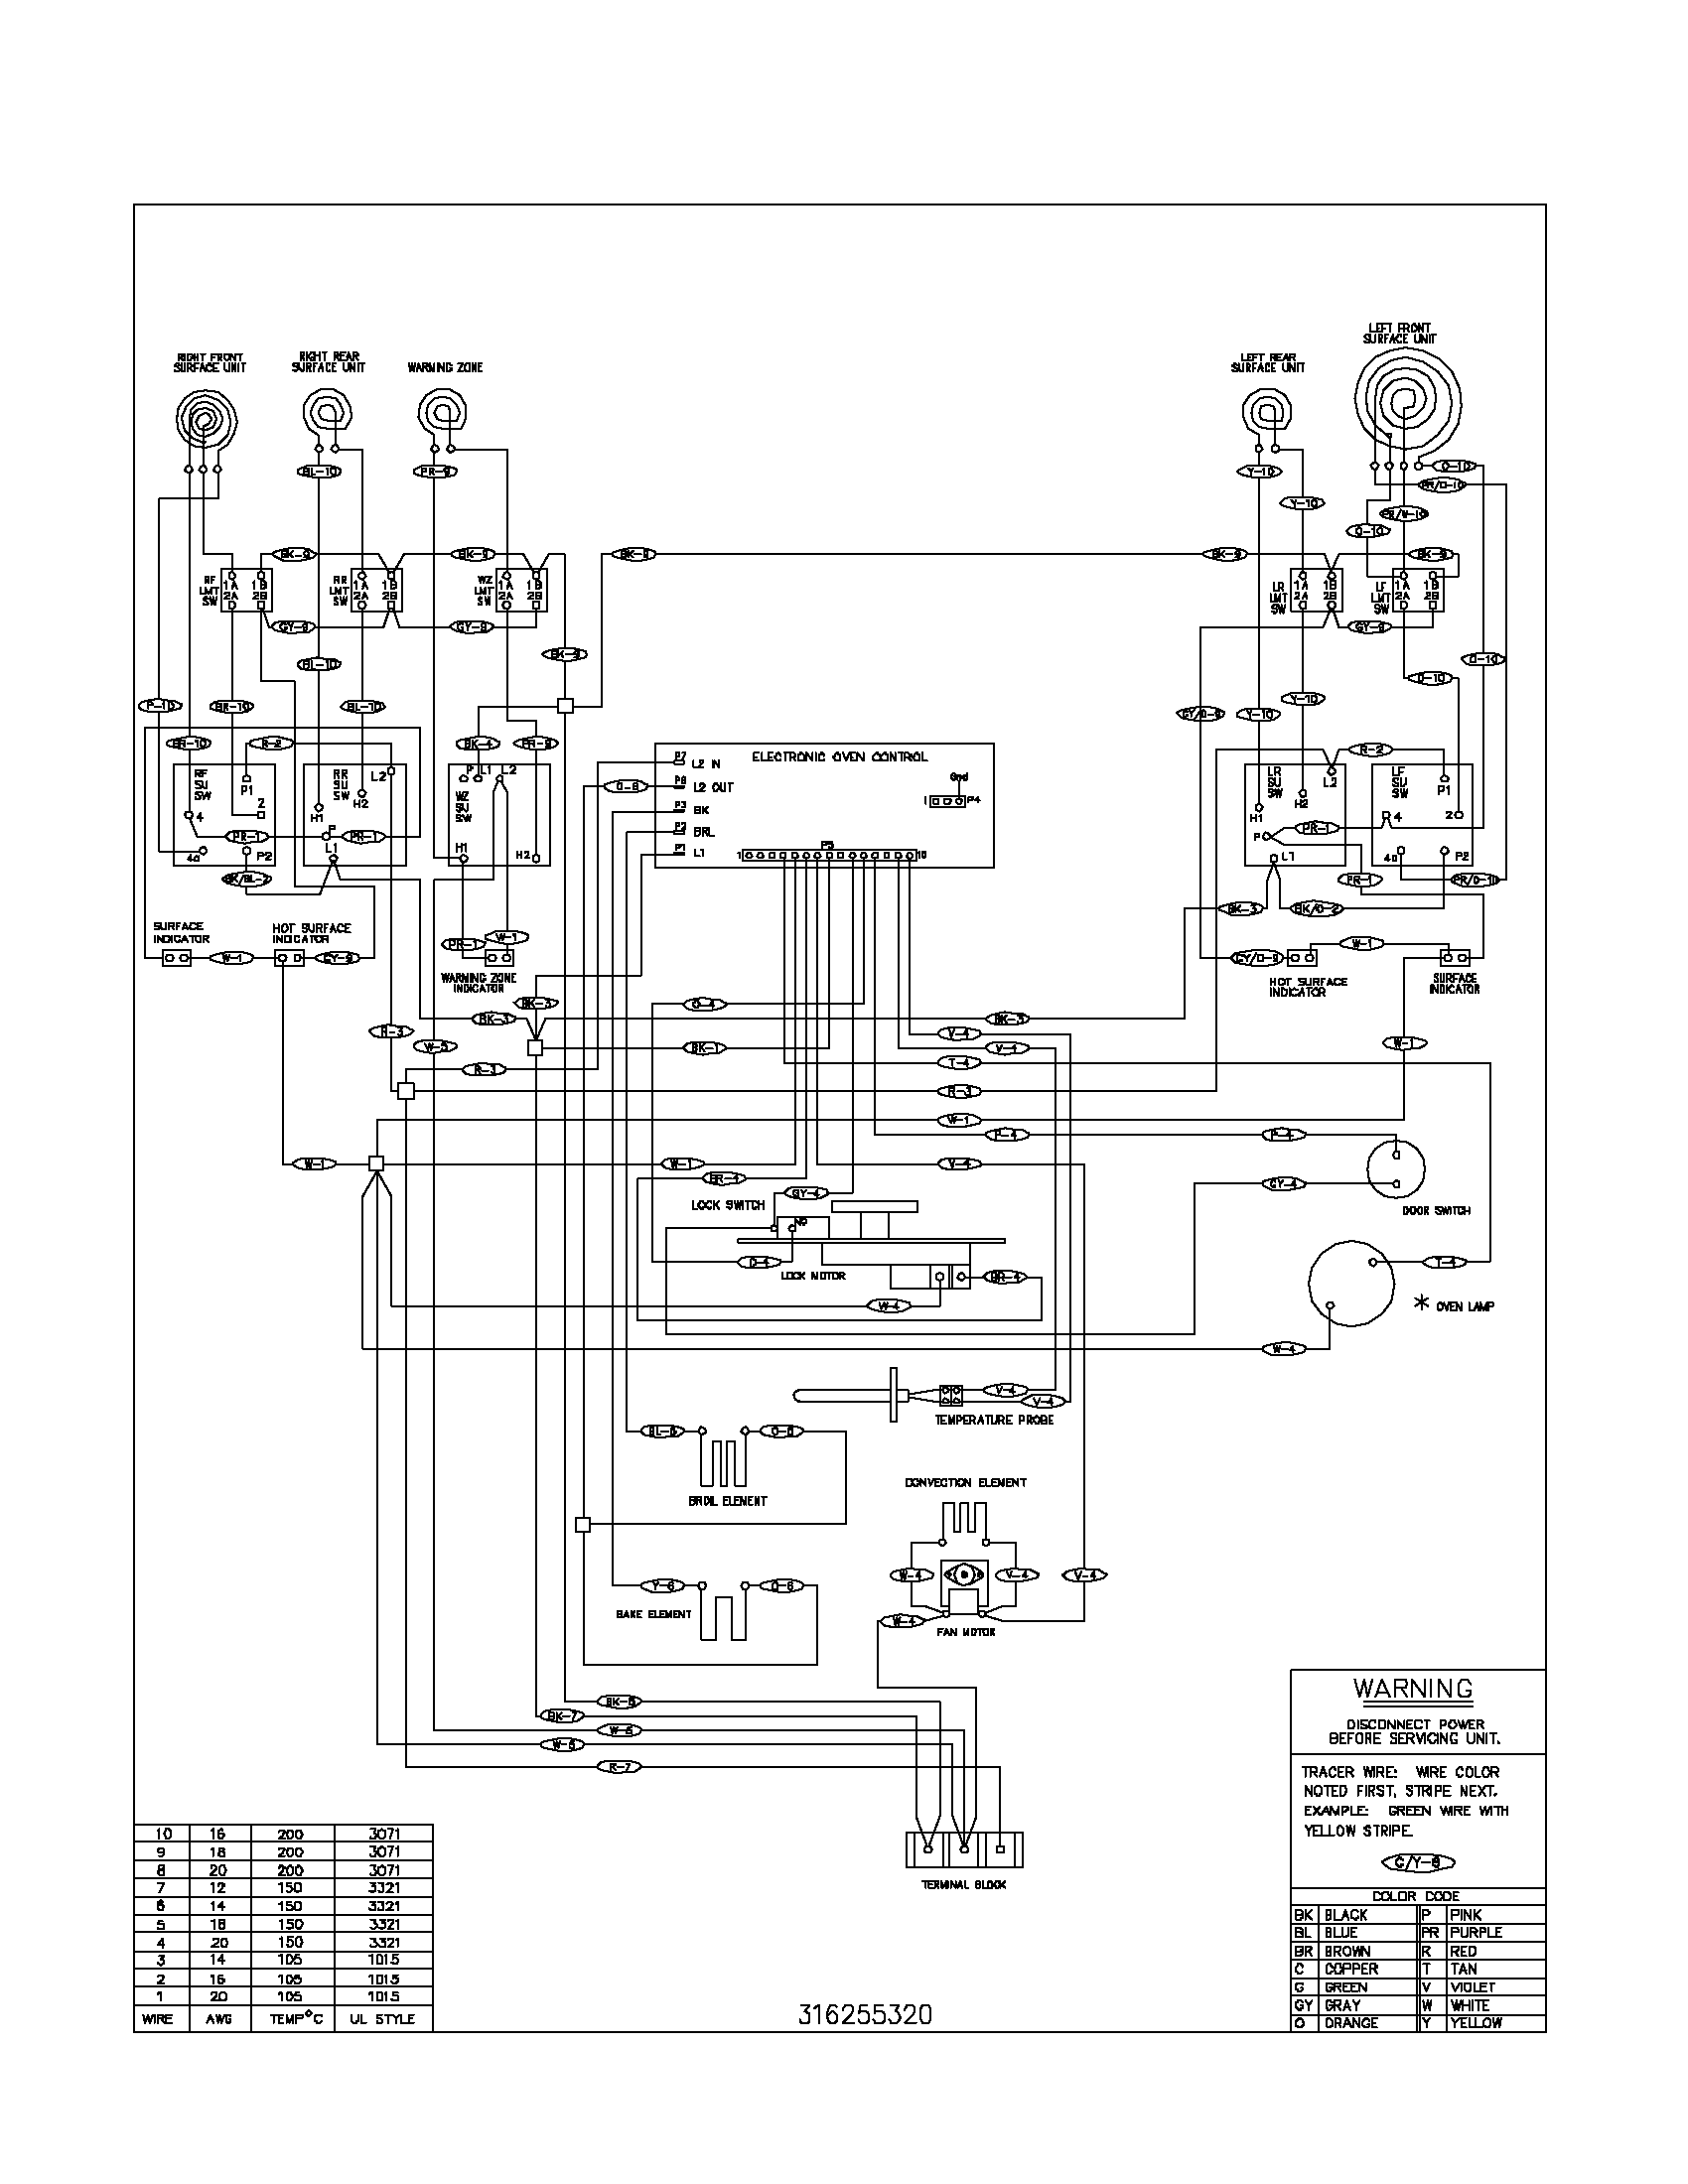 wiring diagram parts whirlpool fefl88acc electric range timer stove clocks and ge electric range wiring diagram at suagrazia.org